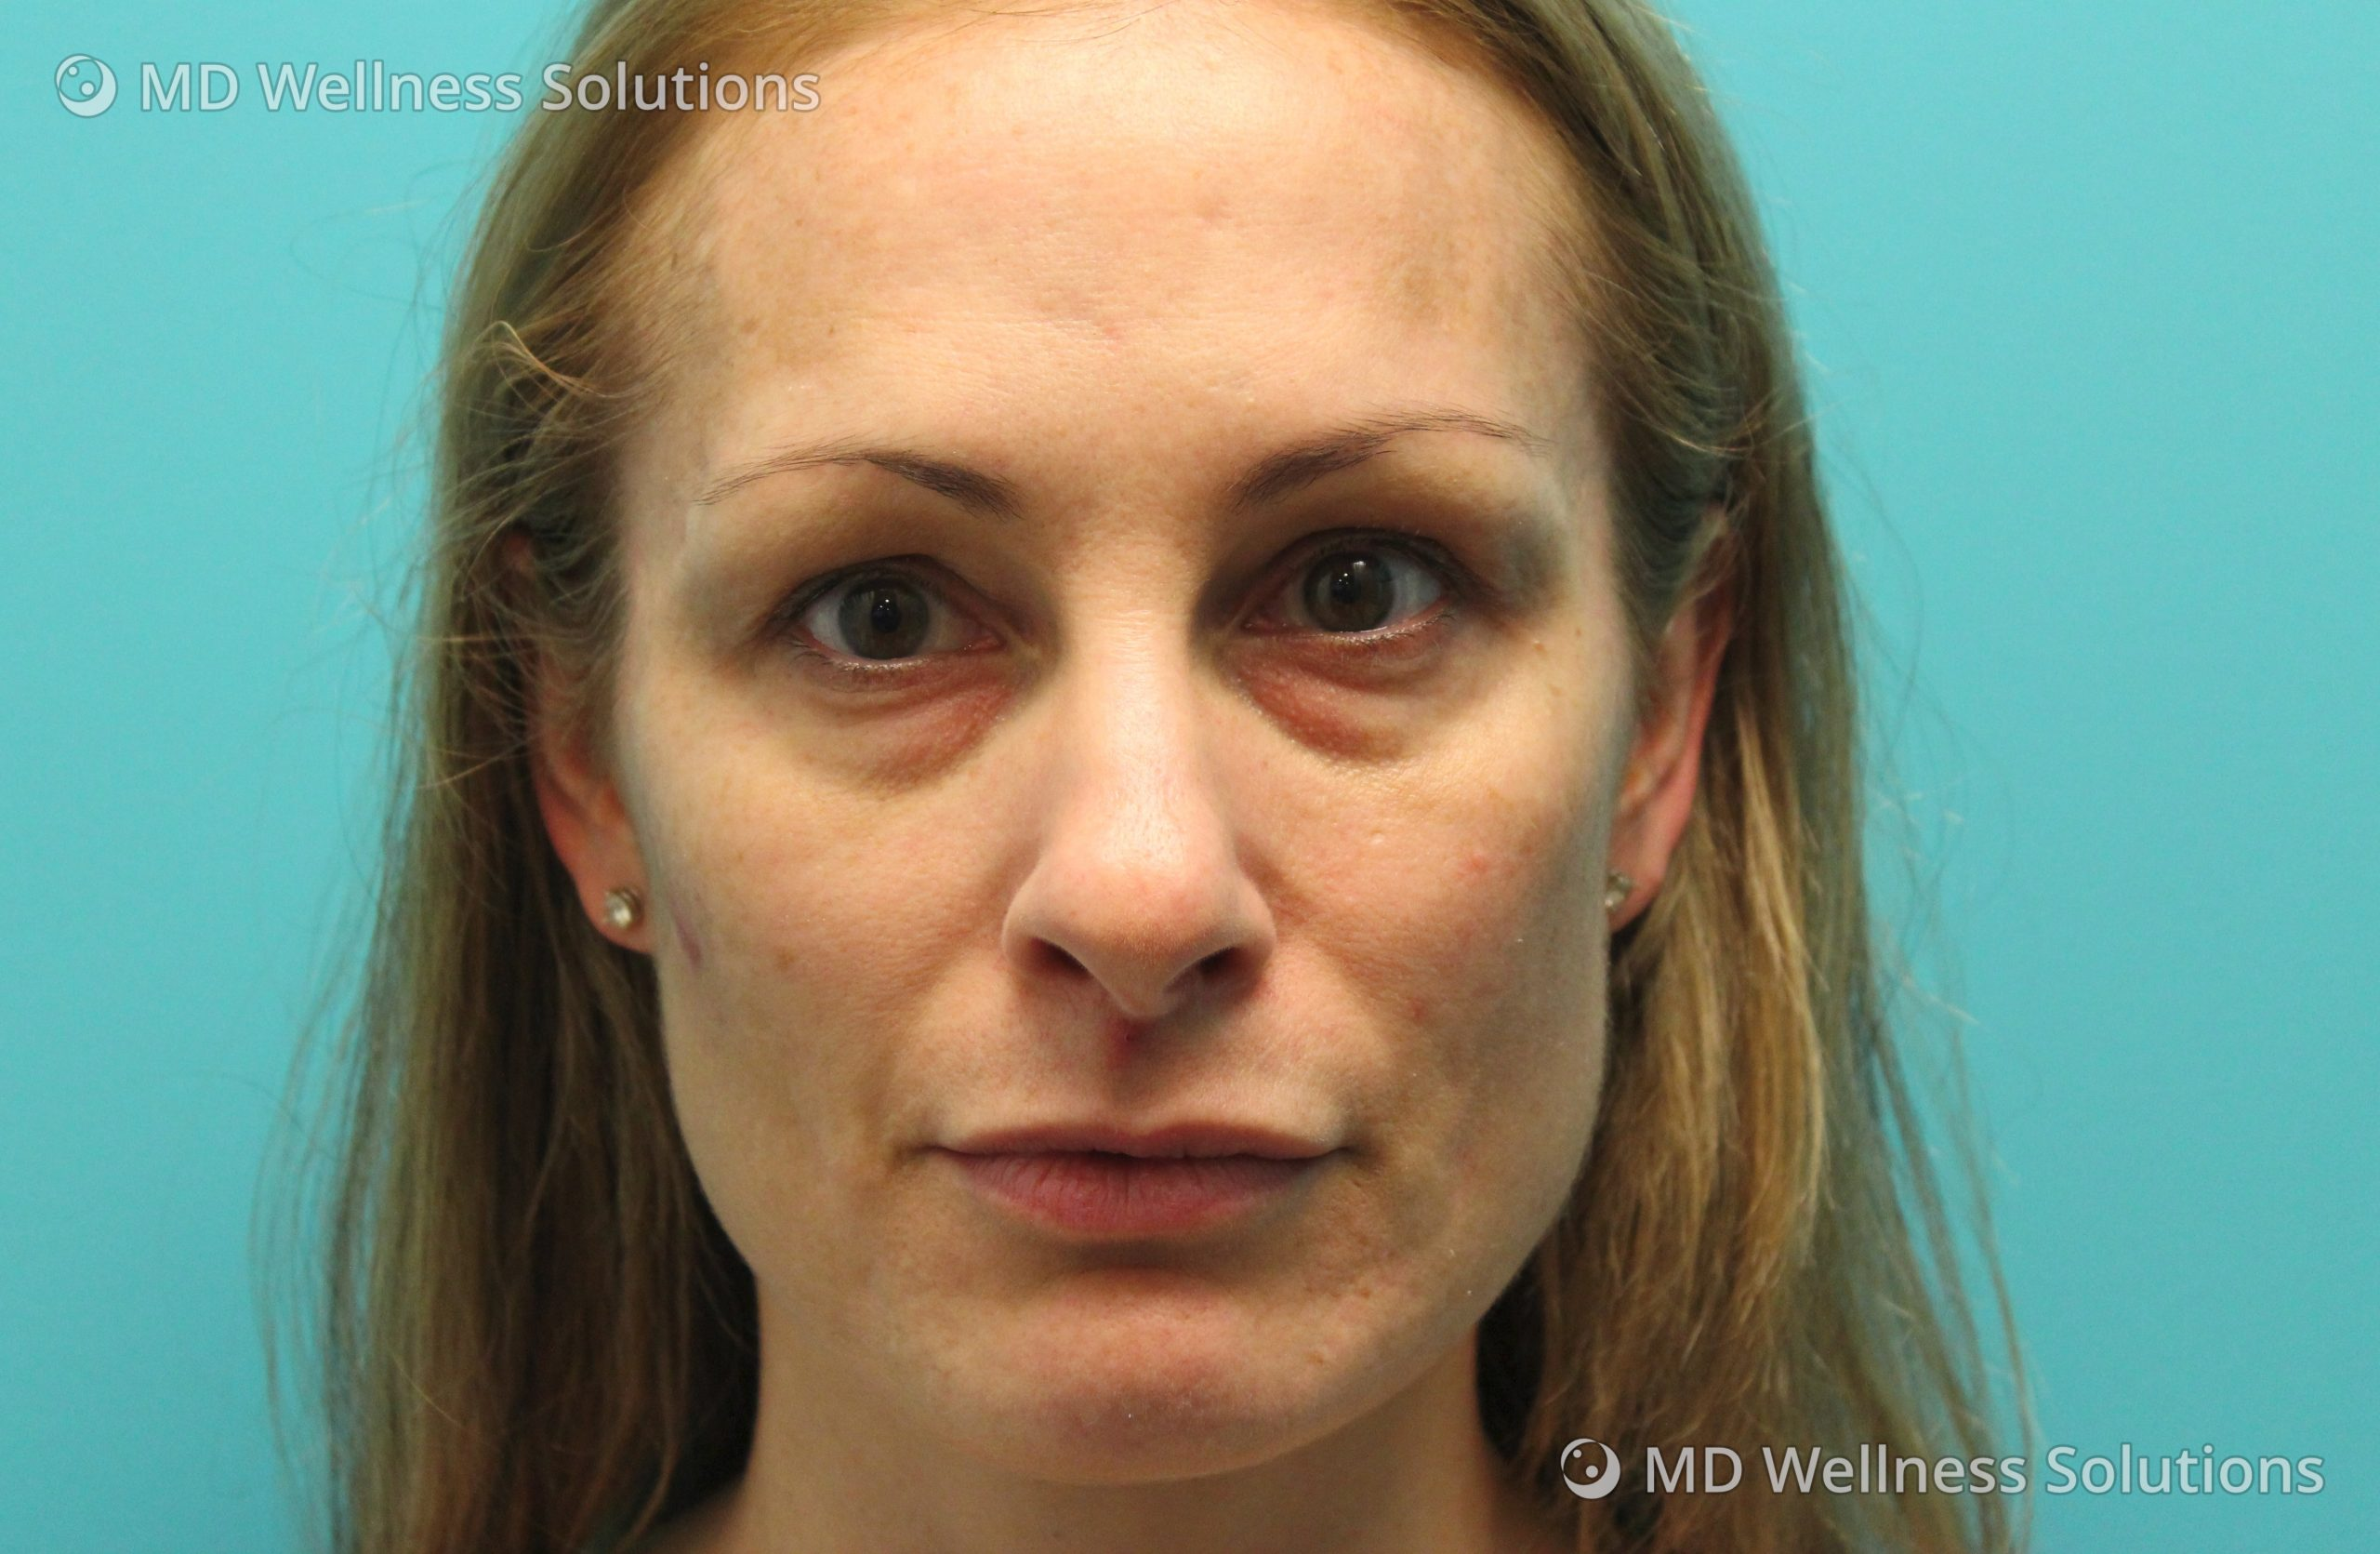 35-44 year old woman before dermal filler treatment